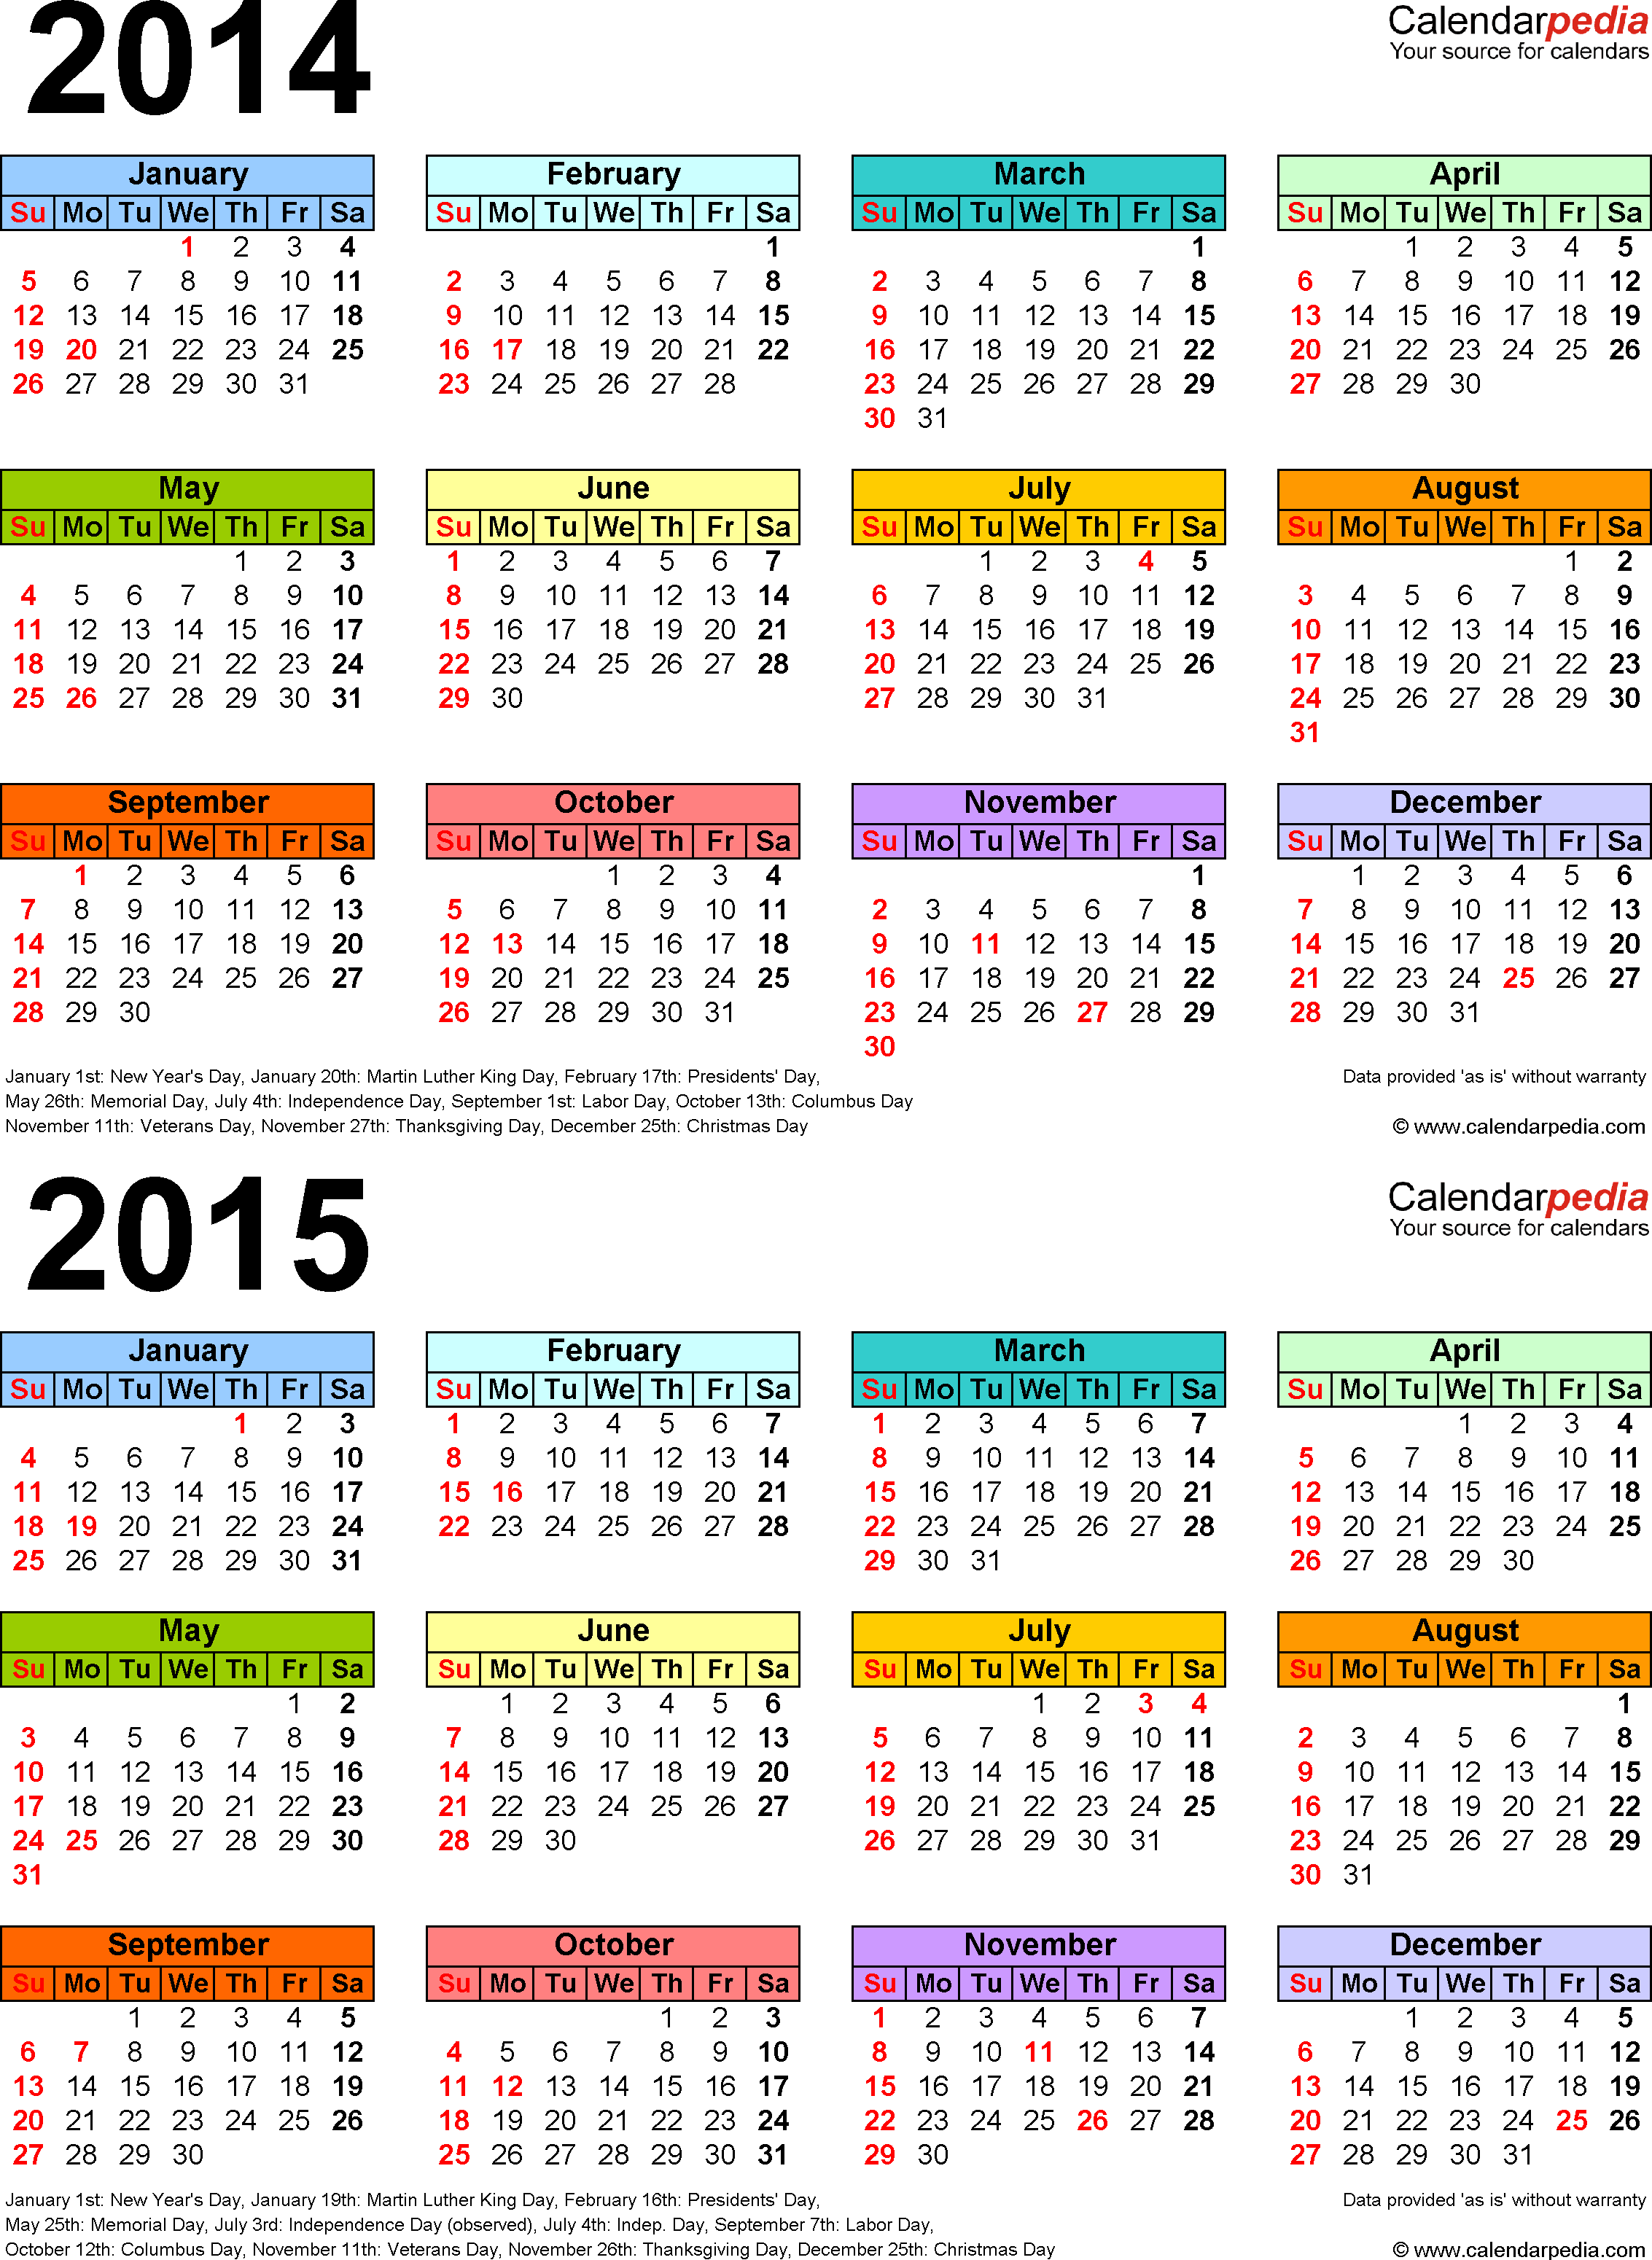 Template 4: Word template for two year calendar 2014/2015 (portrait orientation, 1 page)